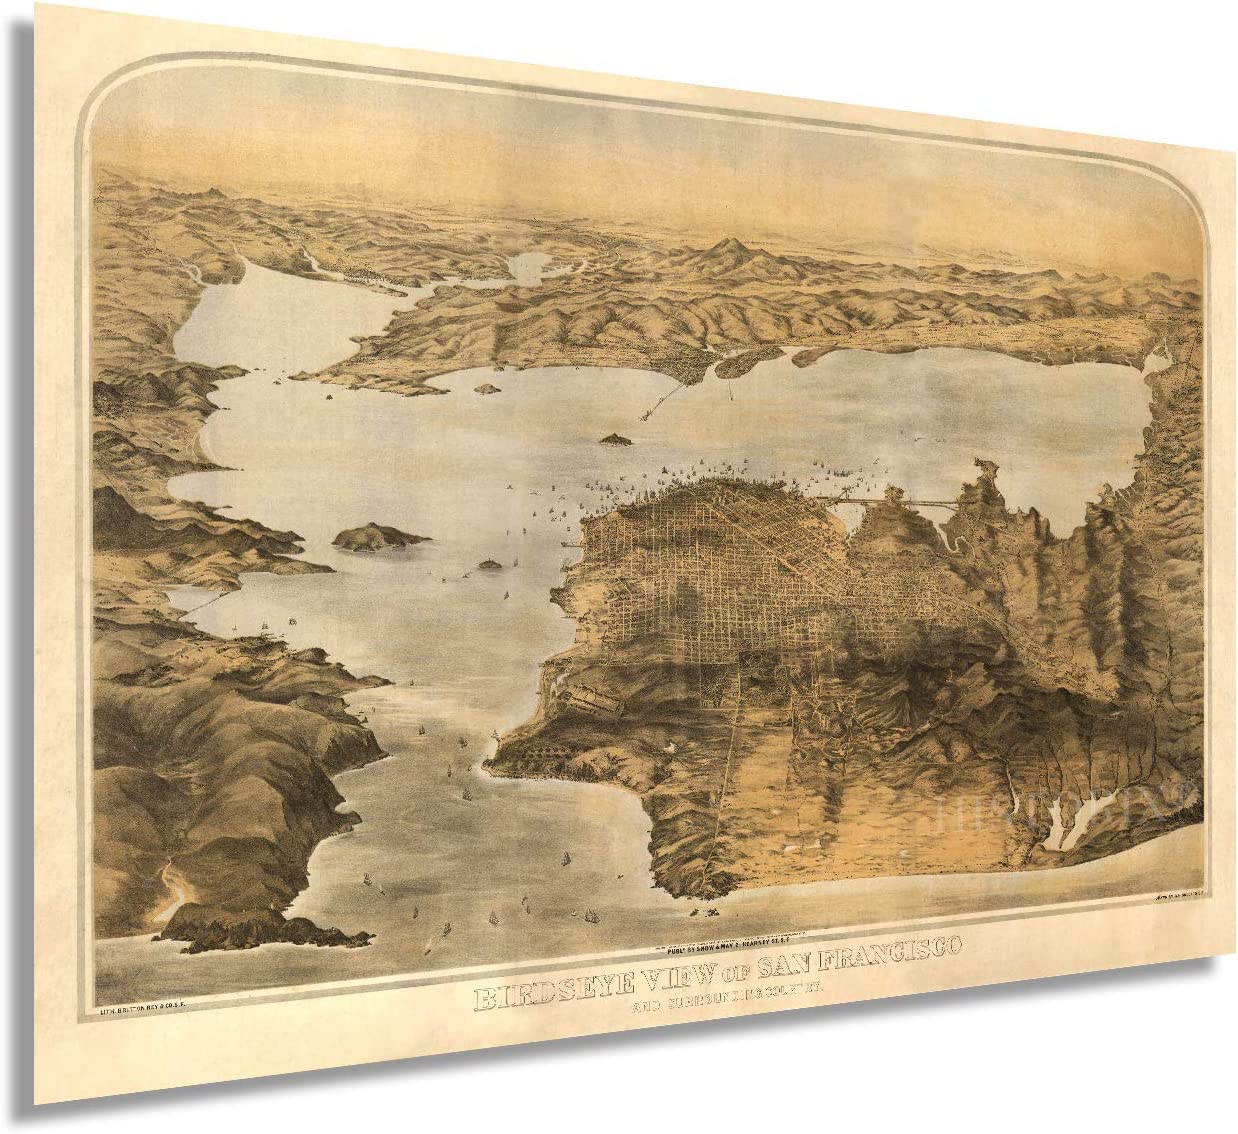 Amazon Com Historix Vintage 1876 San Francisco Bay Area Map Art 16x24 Inch Vintage Map Wall Art Map Of Bay Area Poster San Francisco Map Poster San Francisco Map Most relevant best selling latest uploads. art 16x24 inch vintage map wall art